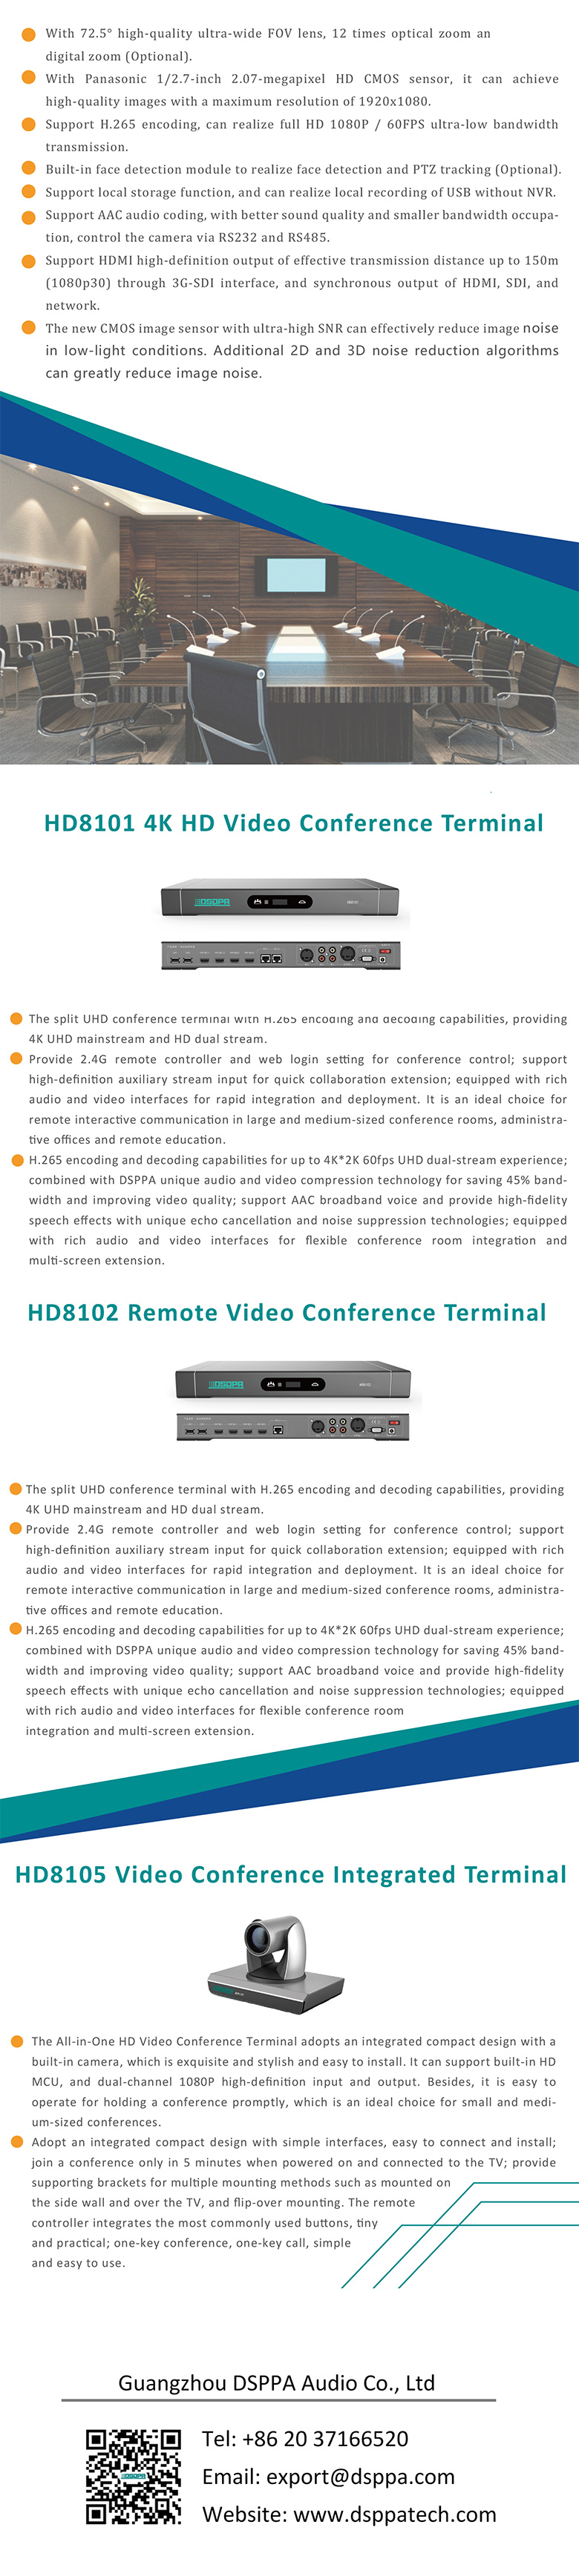 Features of HD8000 4K Remote HD Video Conference System